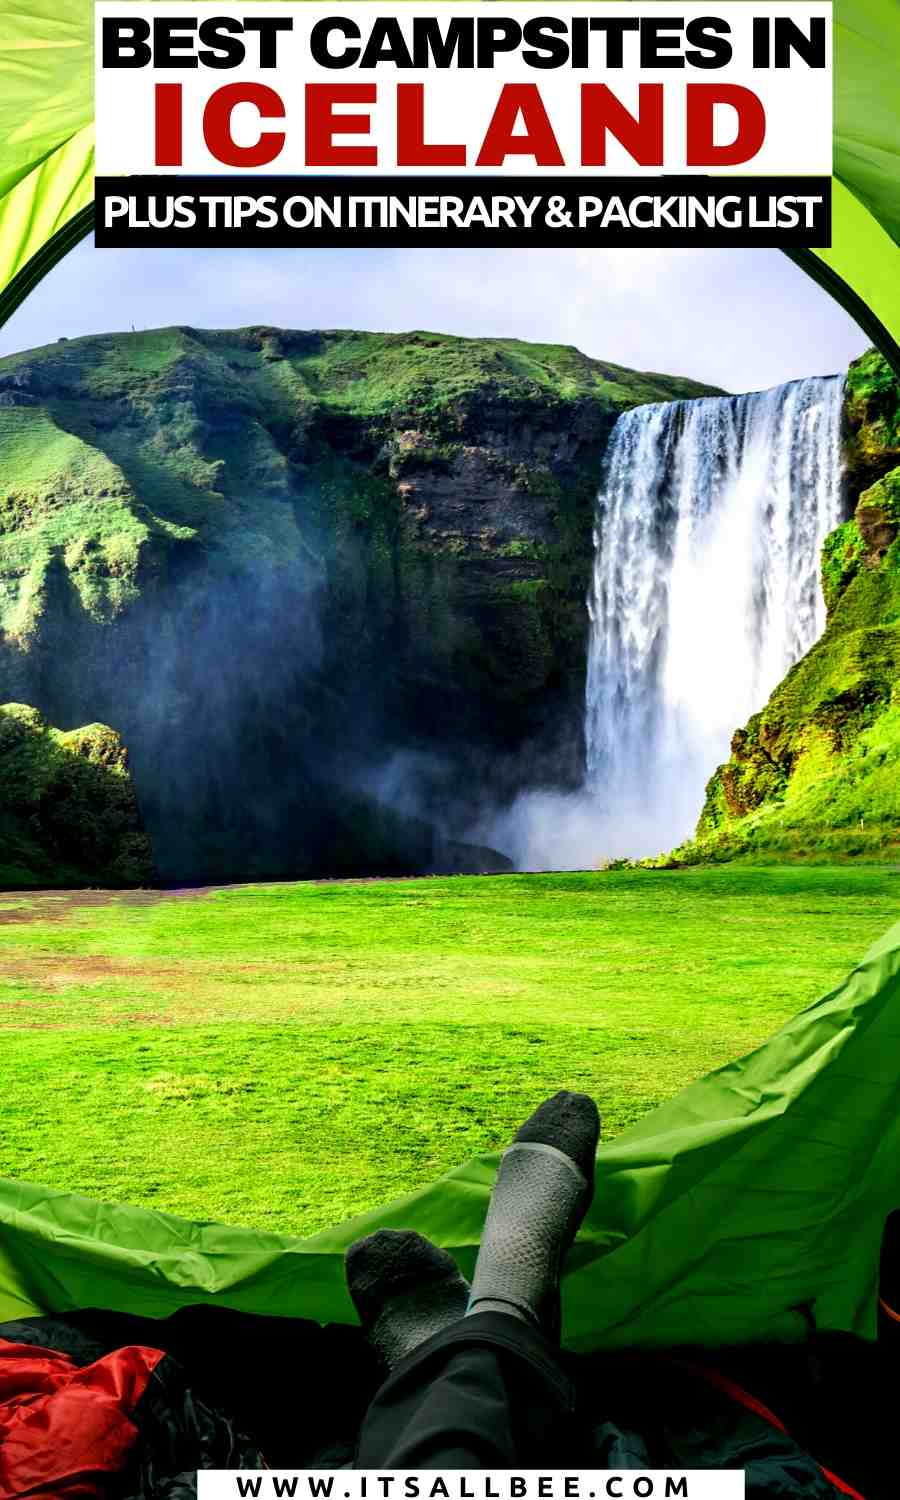 Best campsites in Iceland | Iceland camping grounds | campsites near Reykjavik